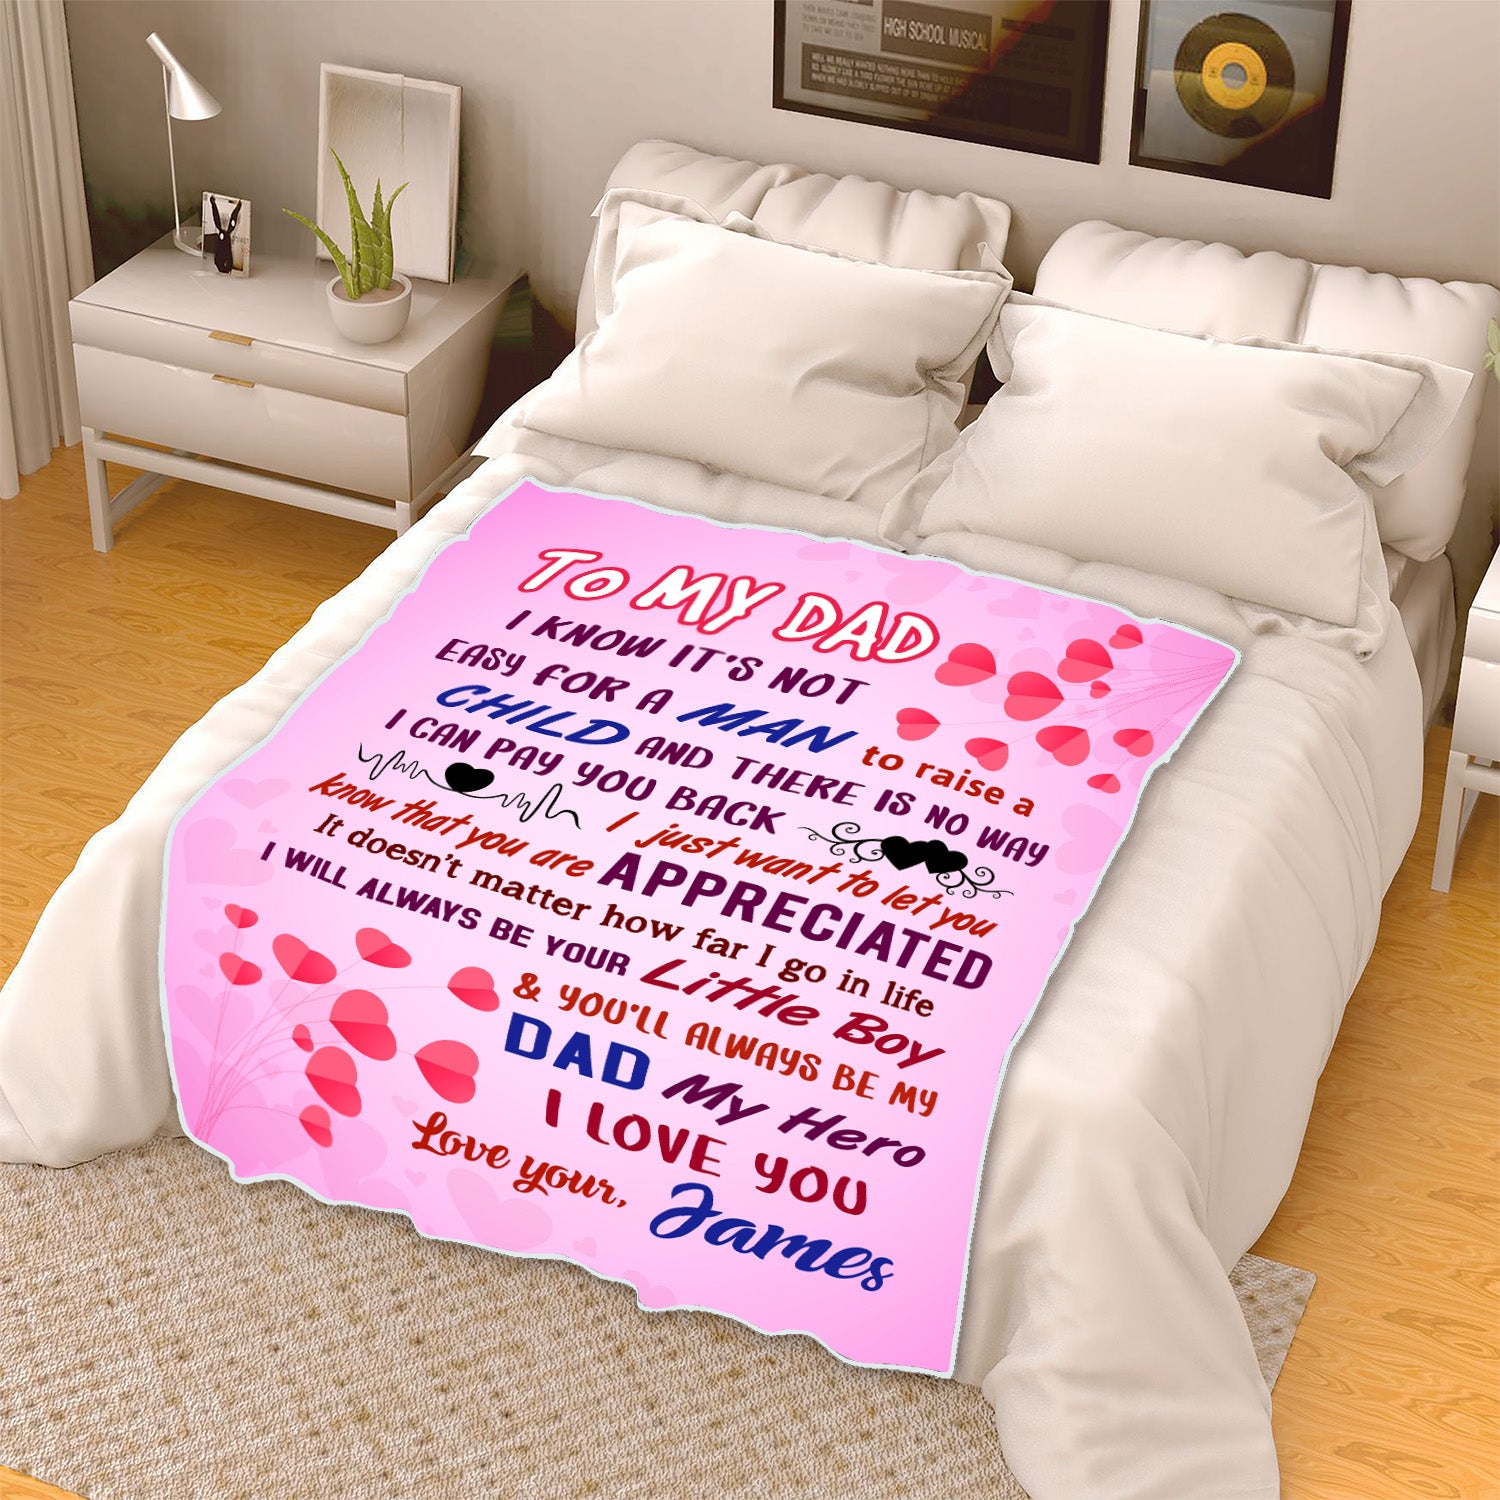 """To My Dad You Are Appreciated""- Personalized Blanket"